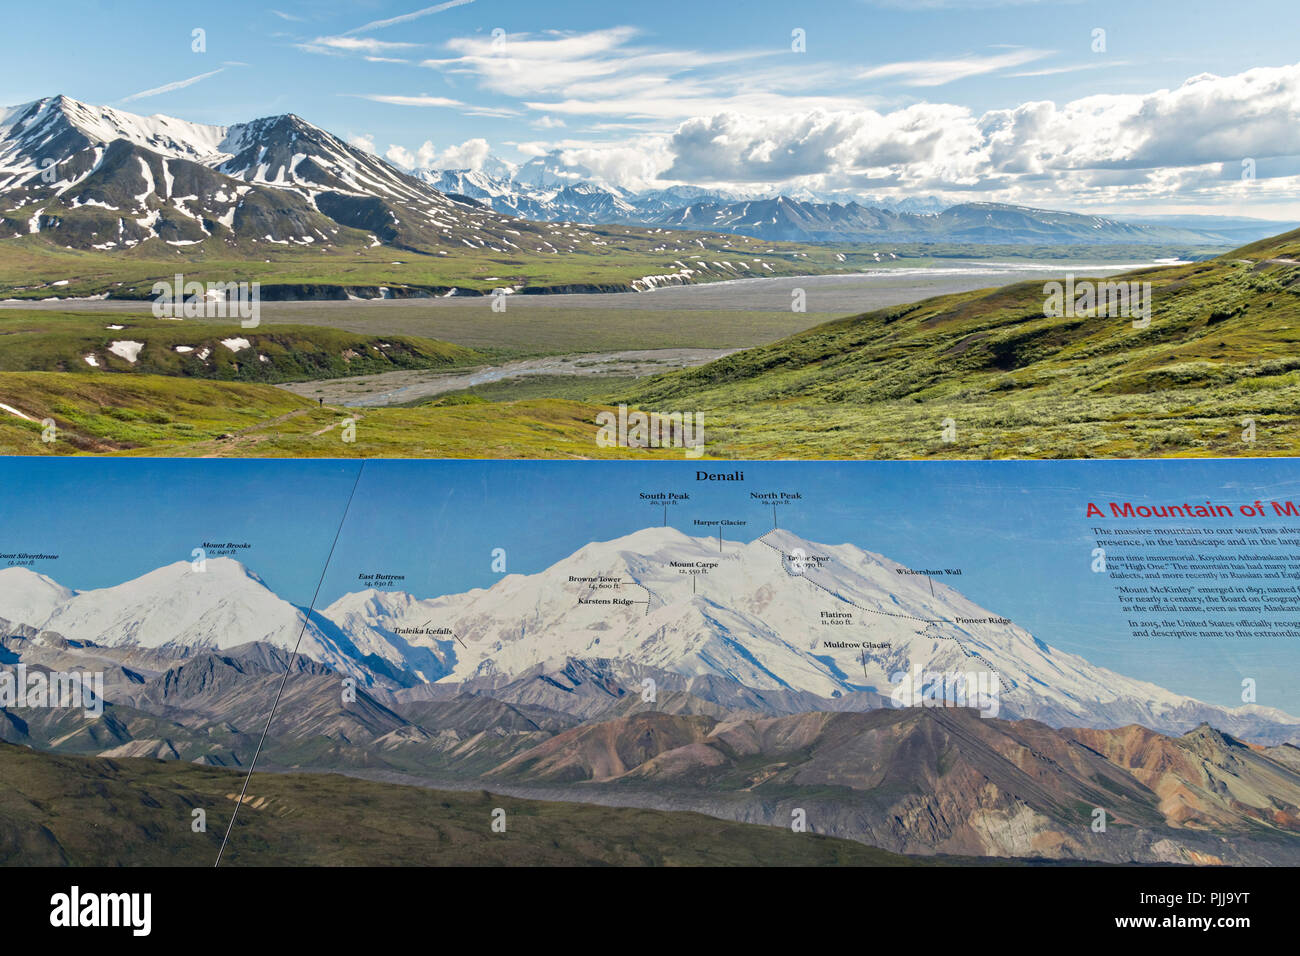 Bluff Alaska Map.Map Showing What Is Ahead In View Including The Alaska Range Denali